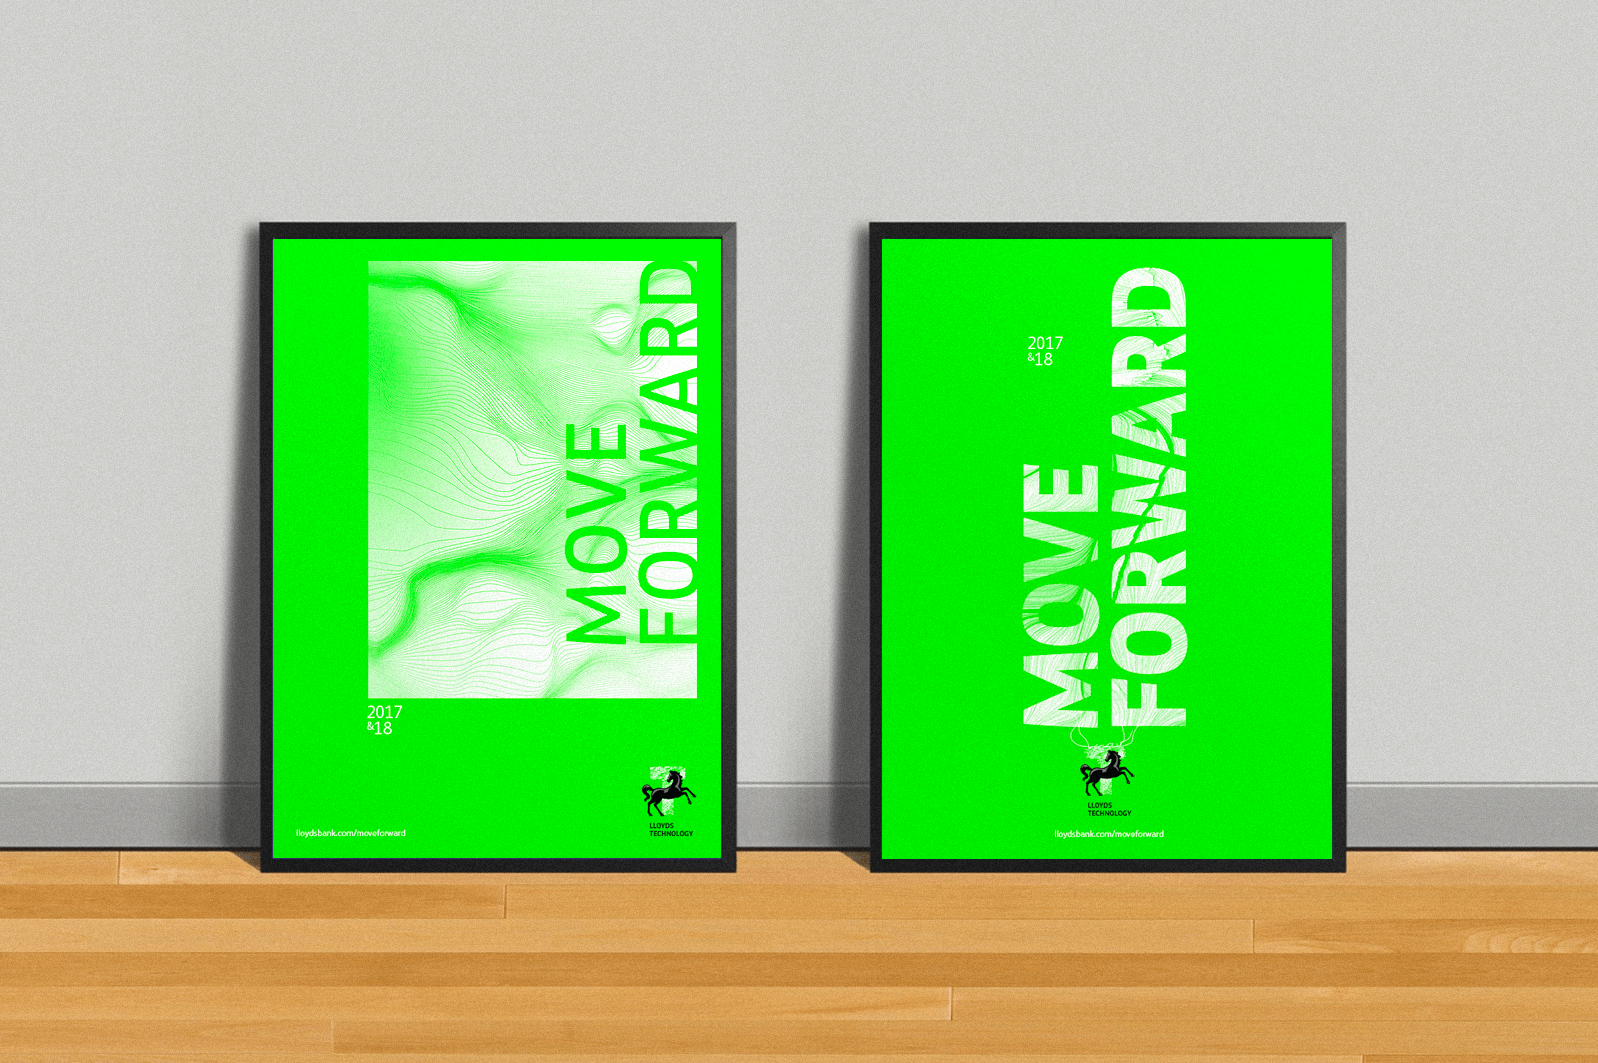 LLOYDS-GroupTech-Posters_MoveForward-01-frames-01a